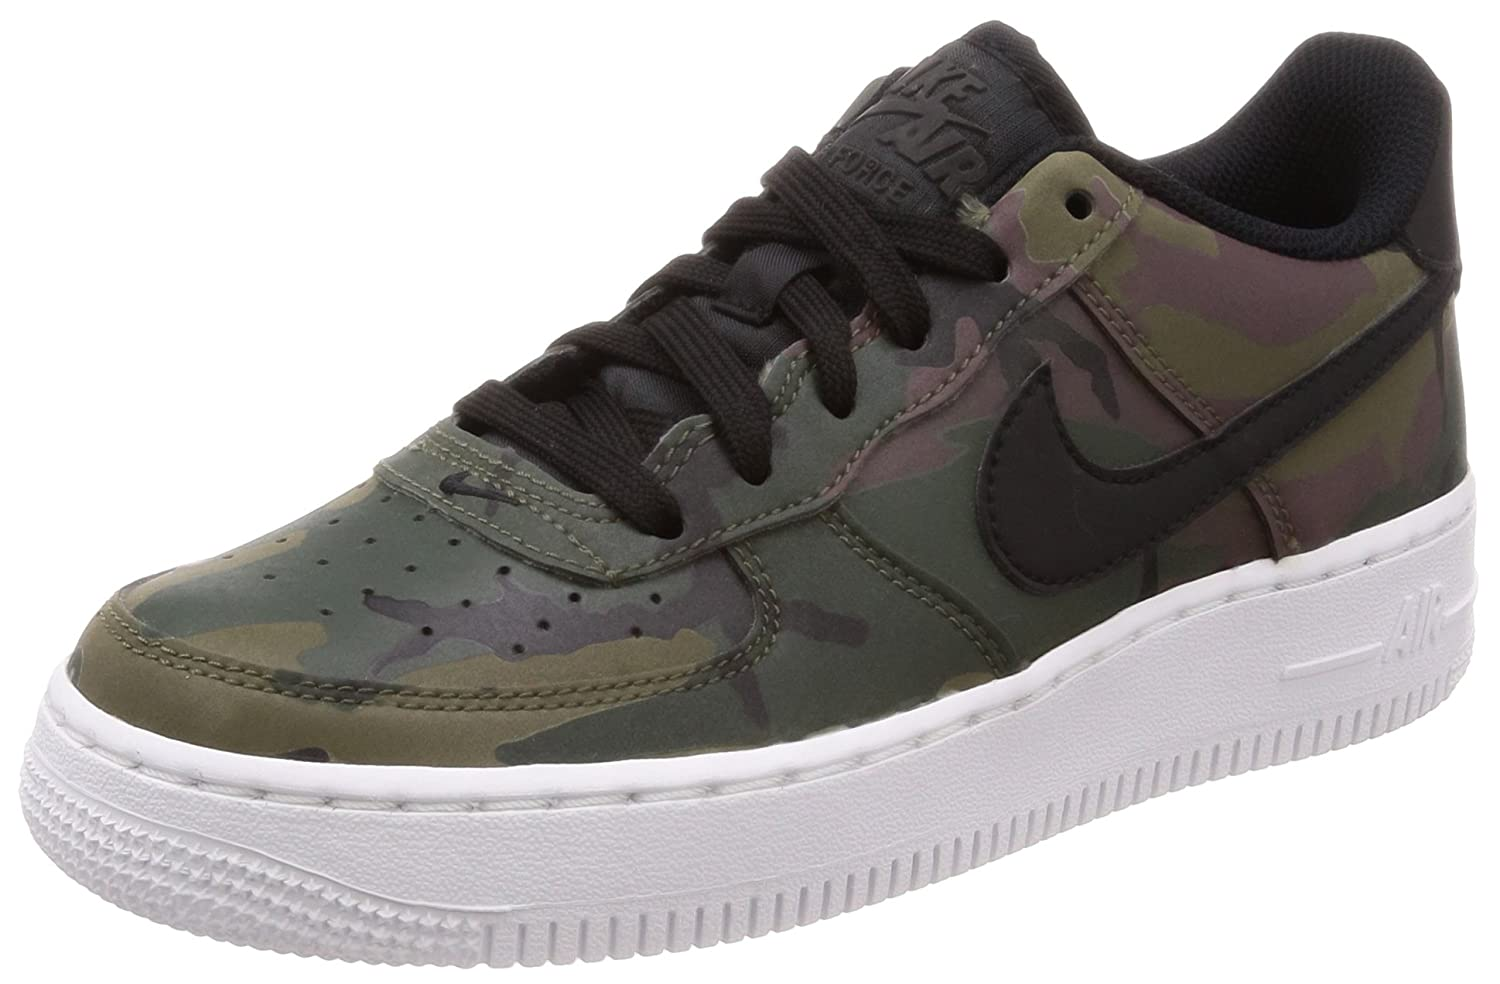 NIKE Air Force 1 Lv8 Big Kids Style : 820438 Big Kids 820438 204